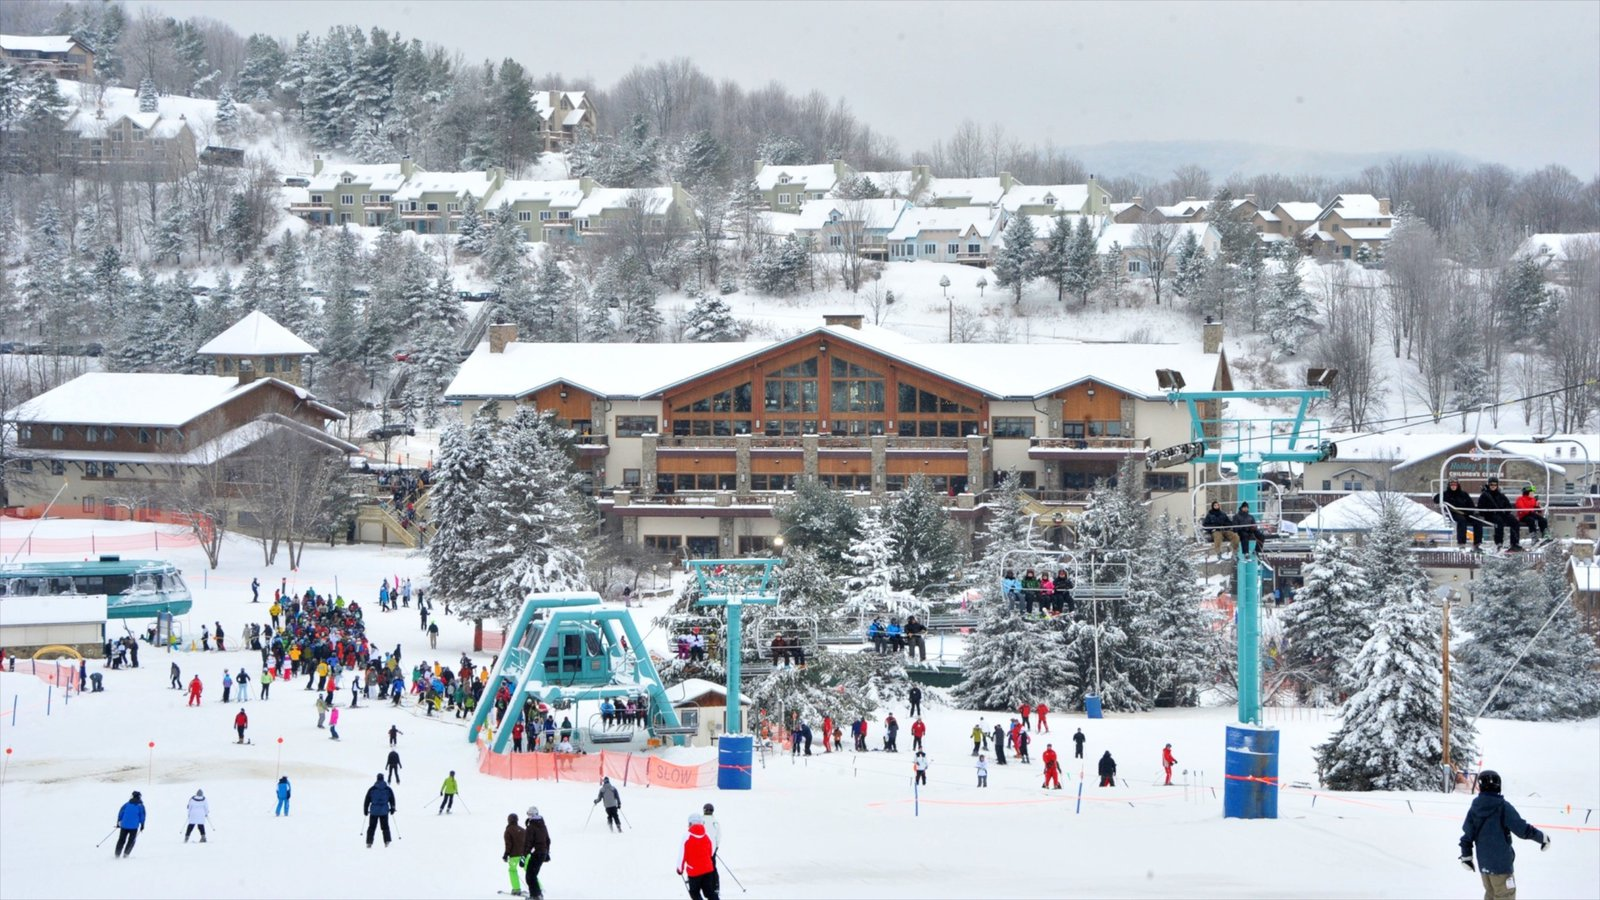 winter pictures: view images of holiday valley resort